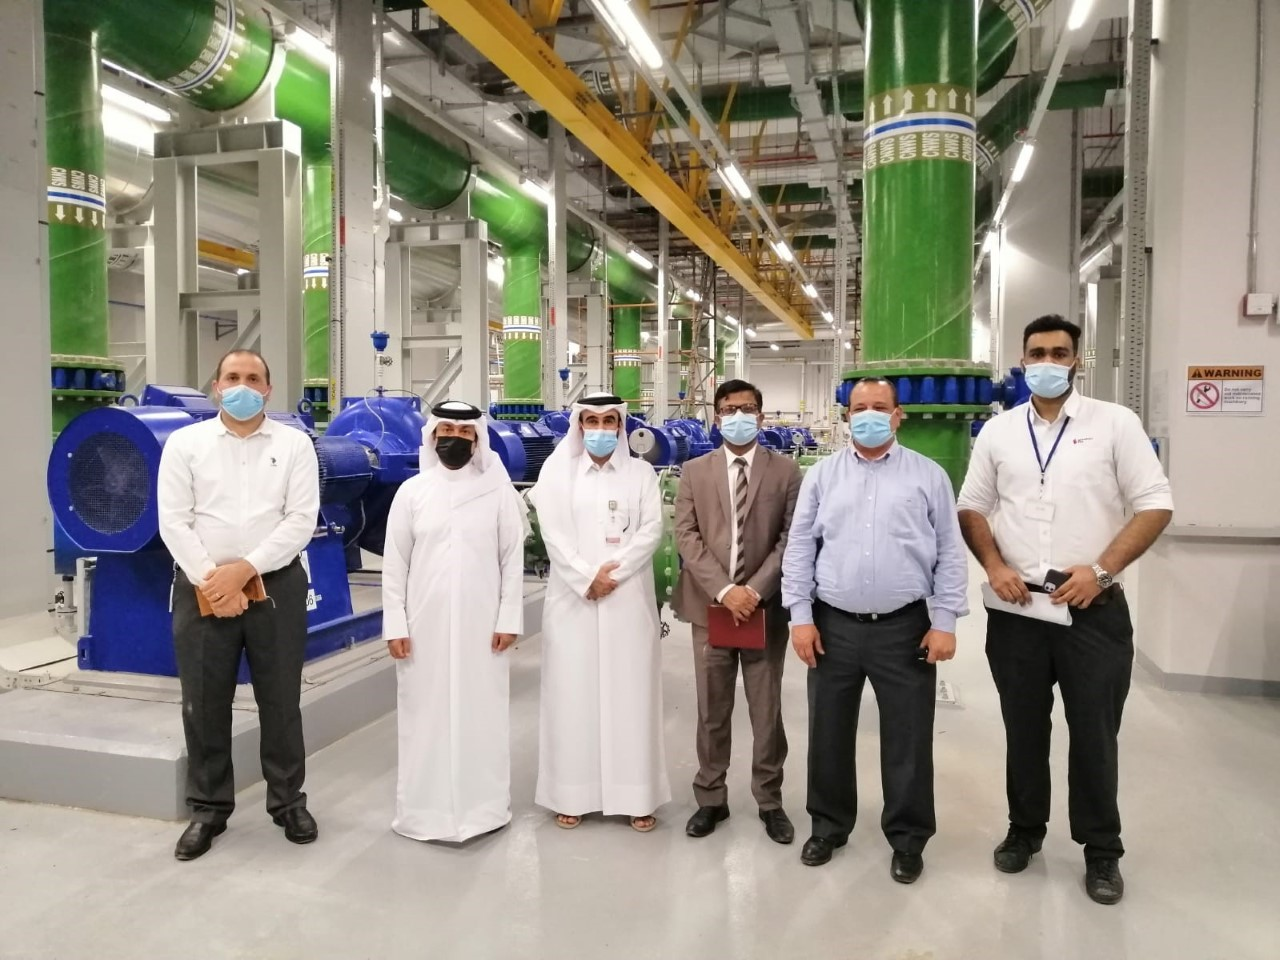 Kahramaa Delegation Inspects District Cooling Plant Project for Al Bayt Stadium